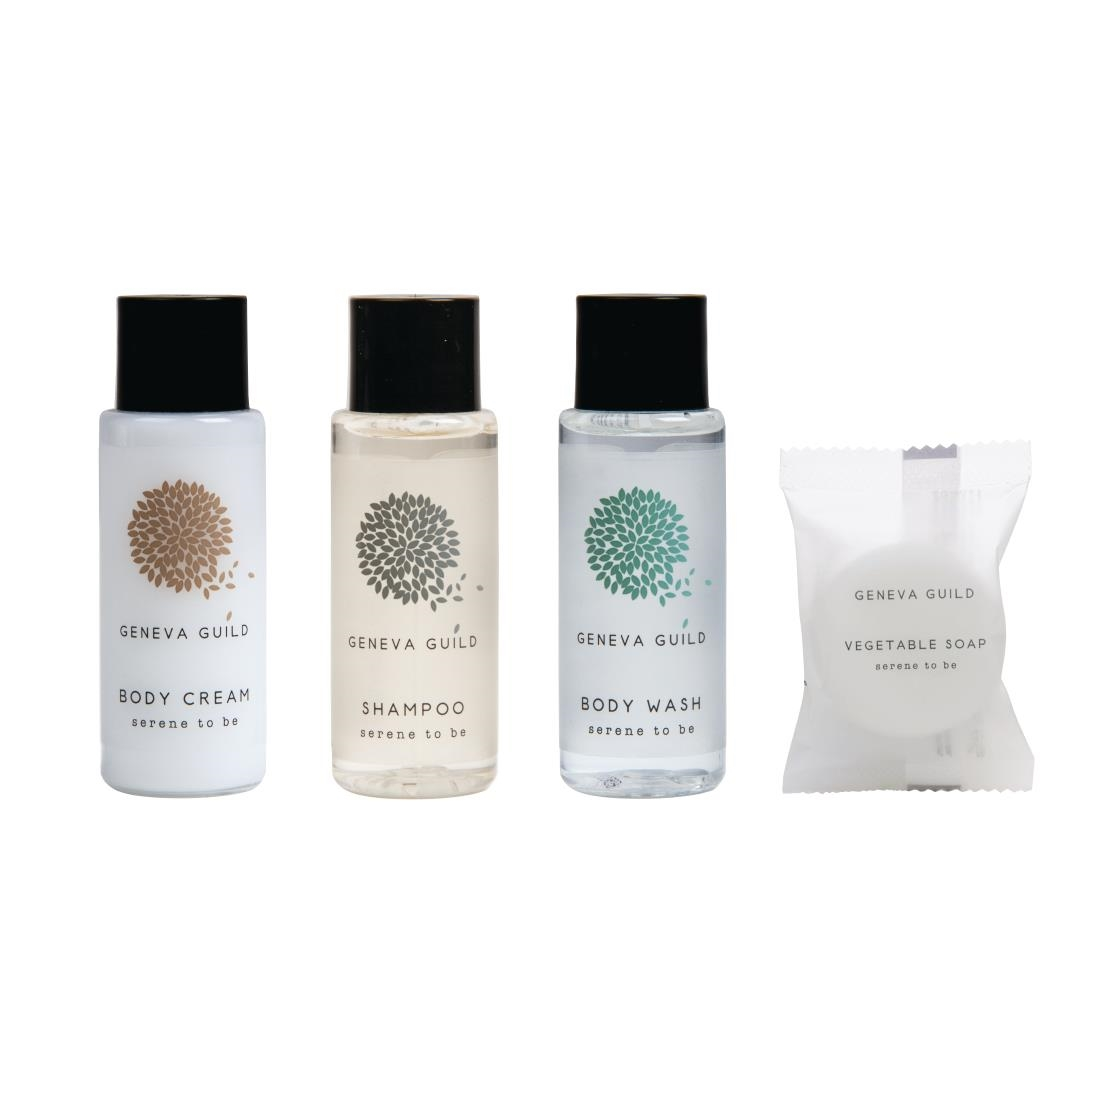 Image of Geneva Guild Toiletries Welcome Pack